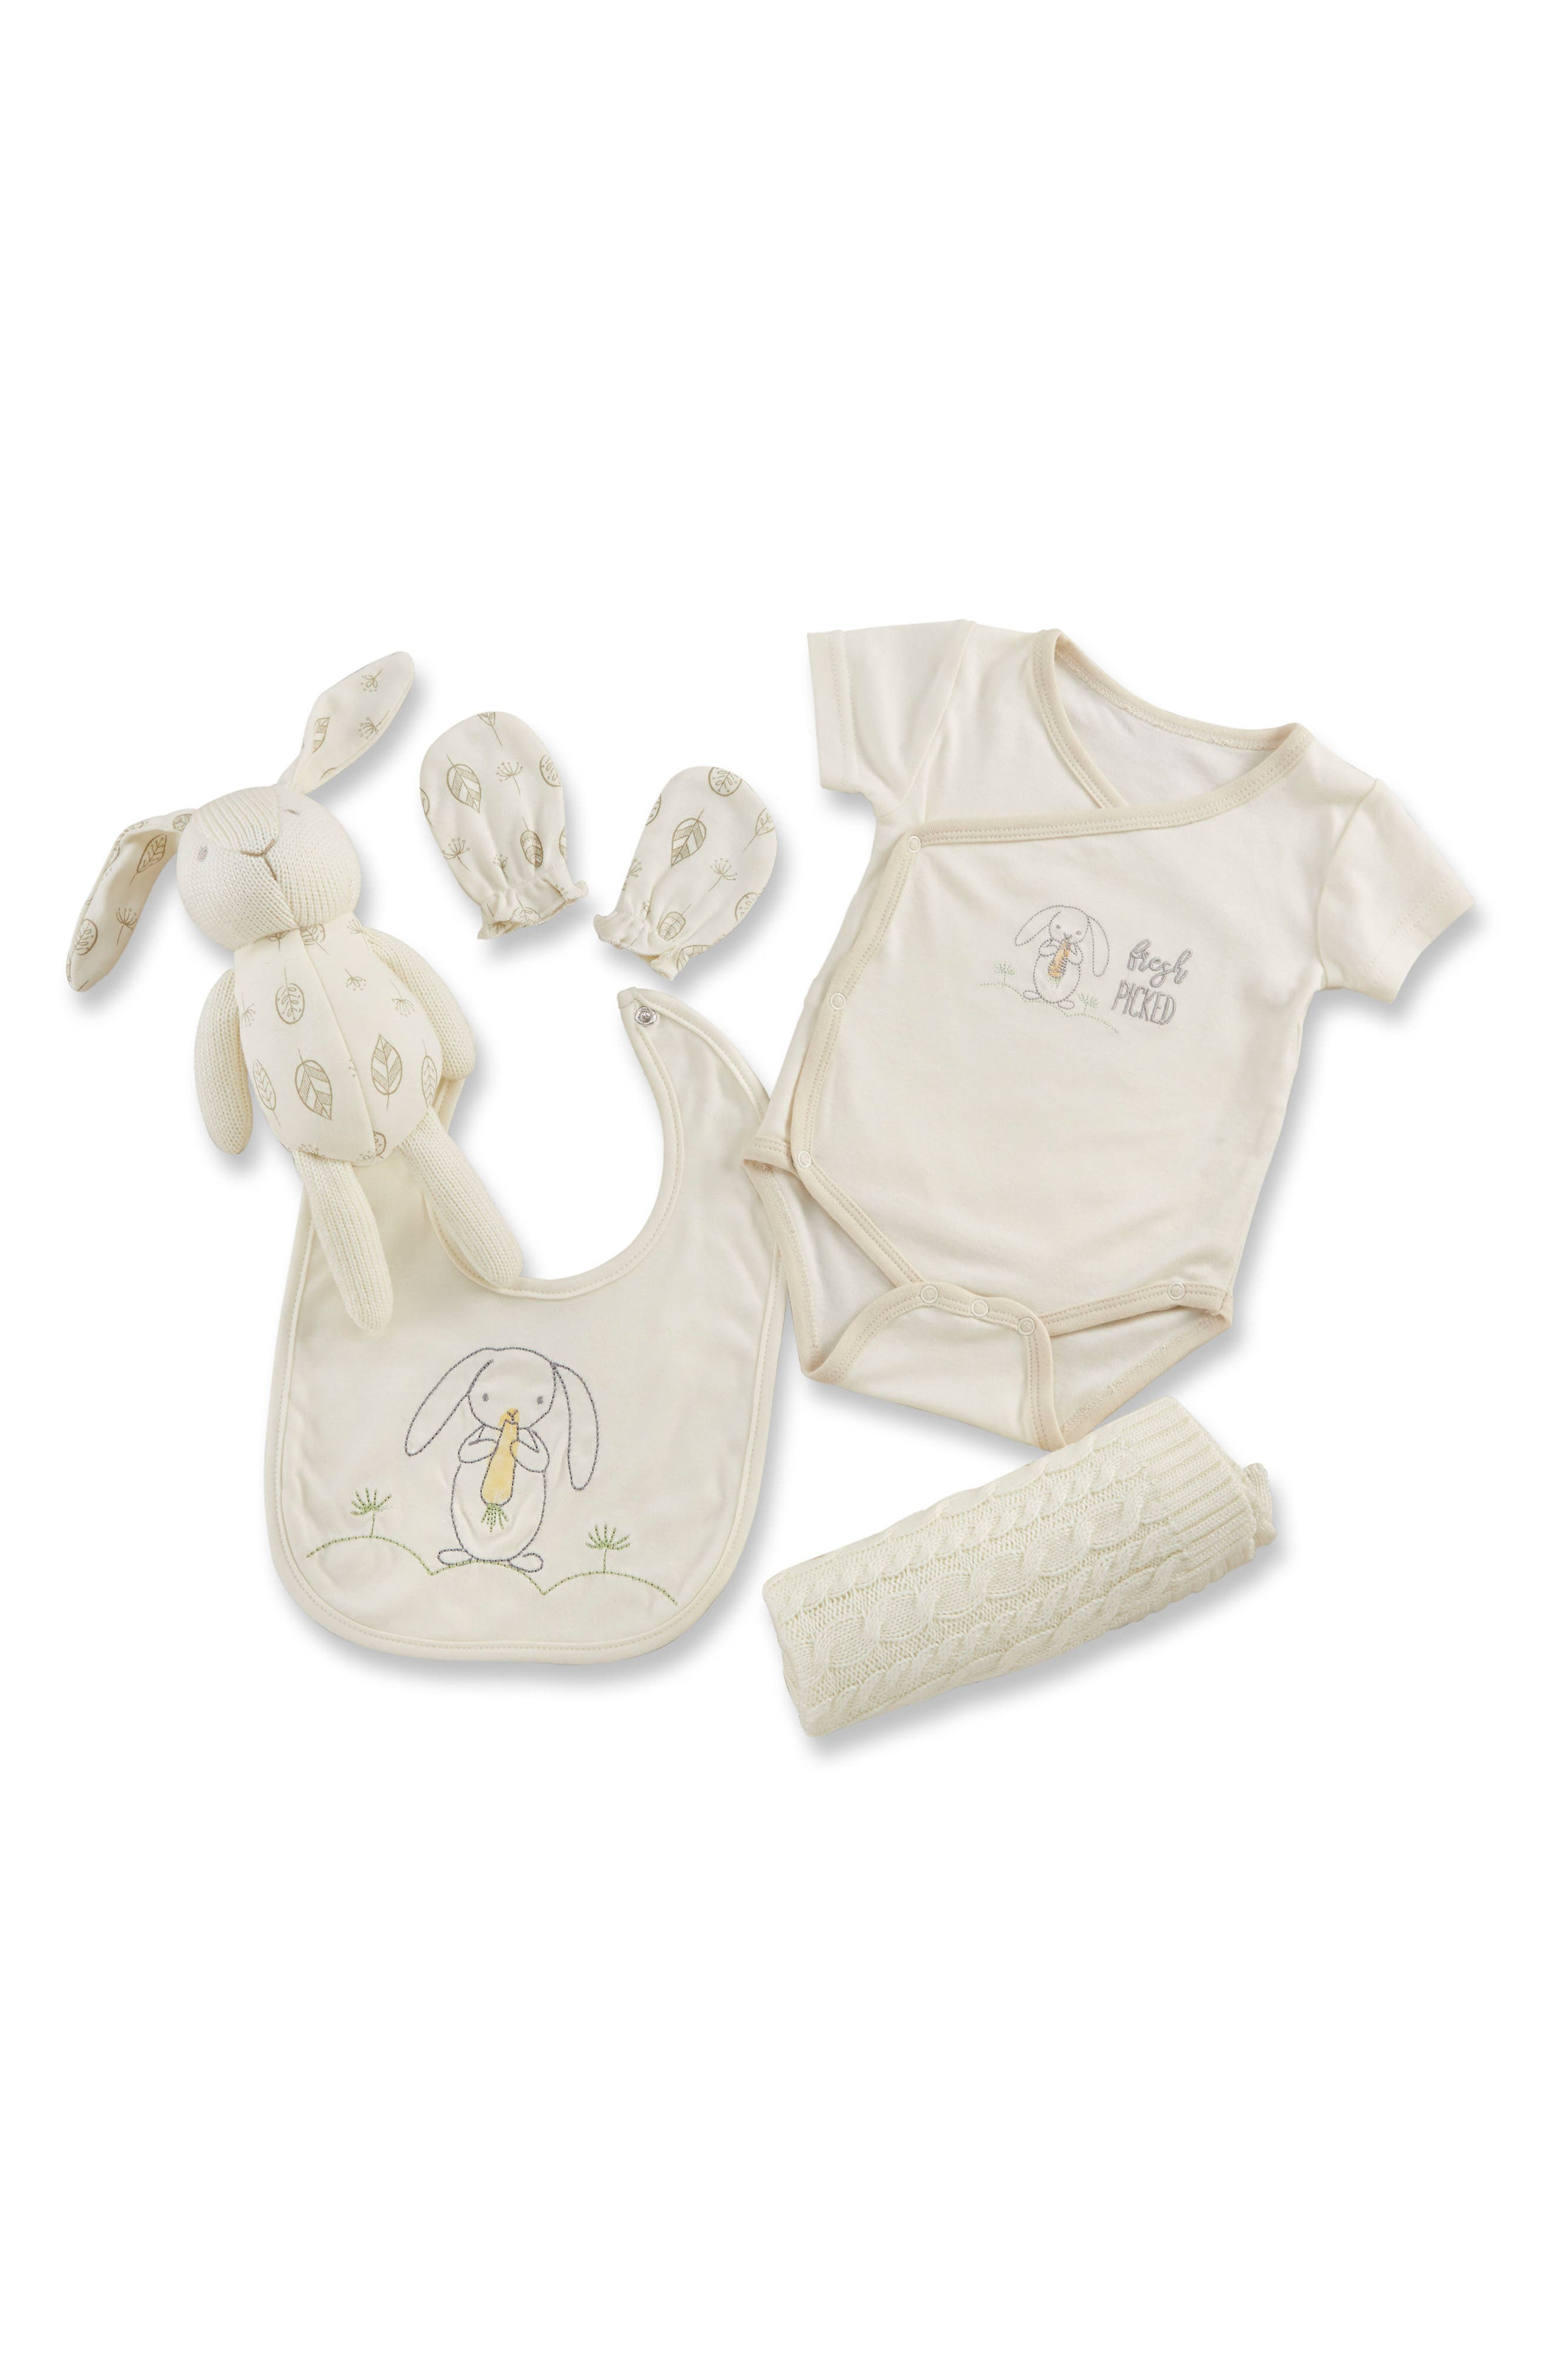 Nature Baby Welcome Home Gift Set,                         Main,                         color, Beige And Grey